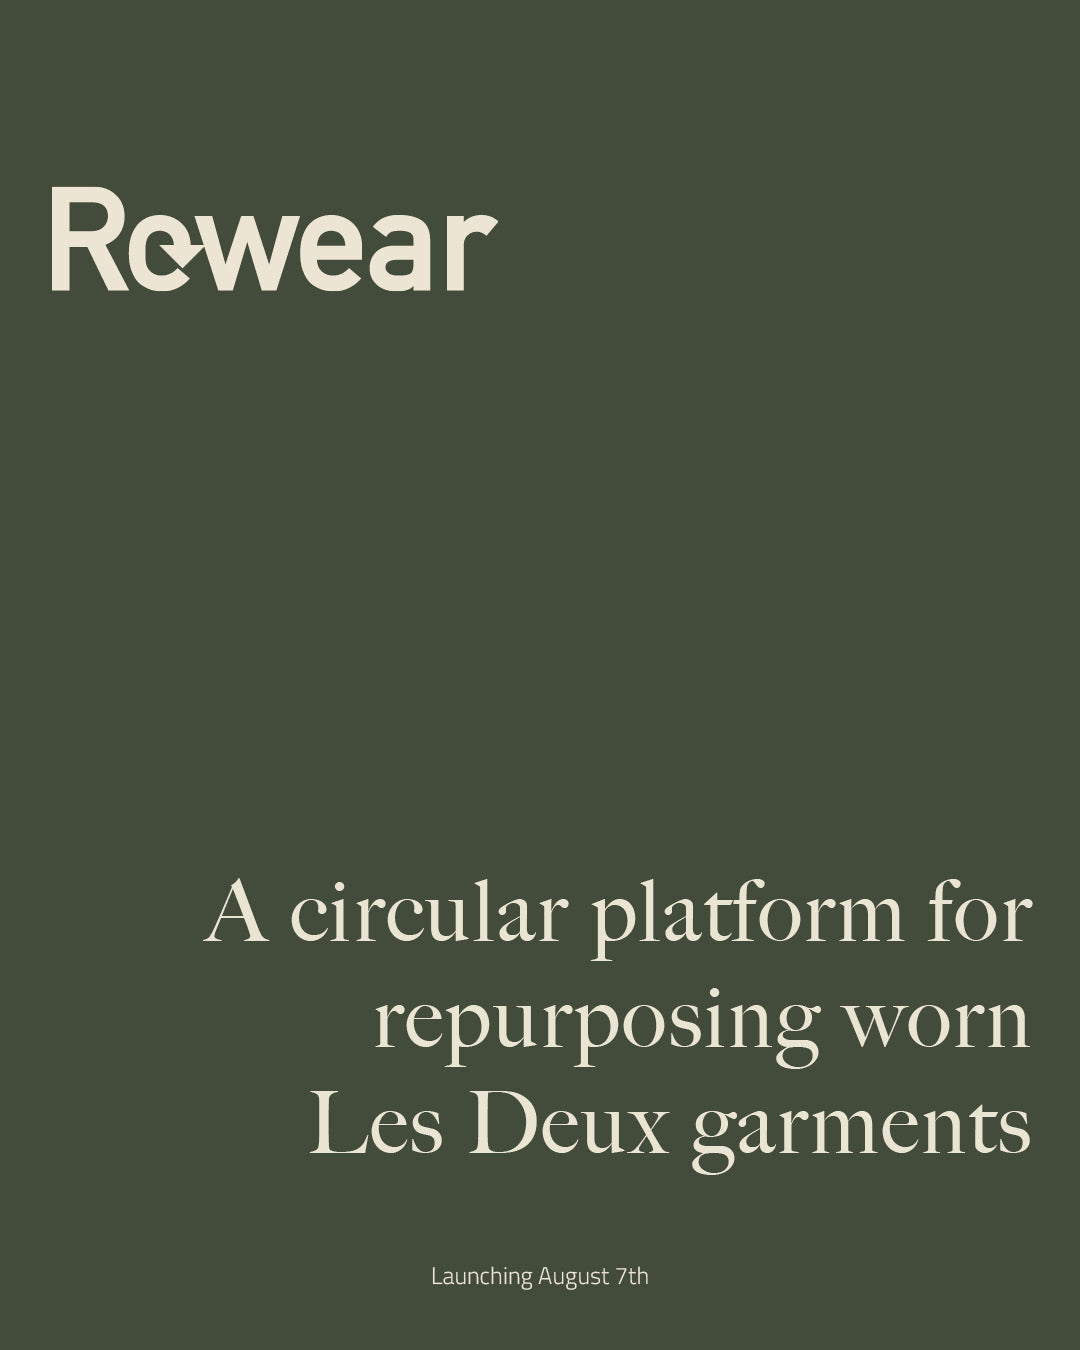 Introducing rewear a circular platform for repurposing worn les deux garments